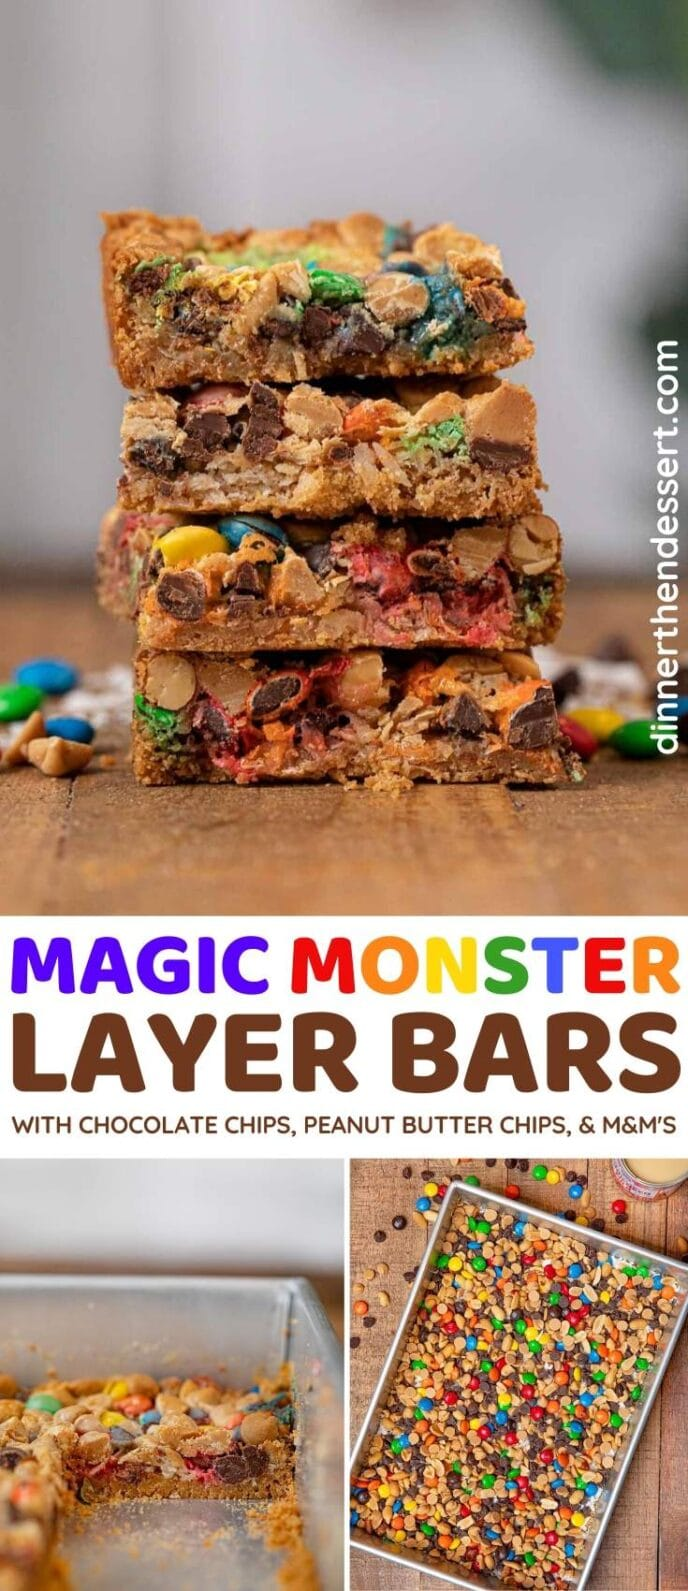 Magic Monster Layer Bars collage